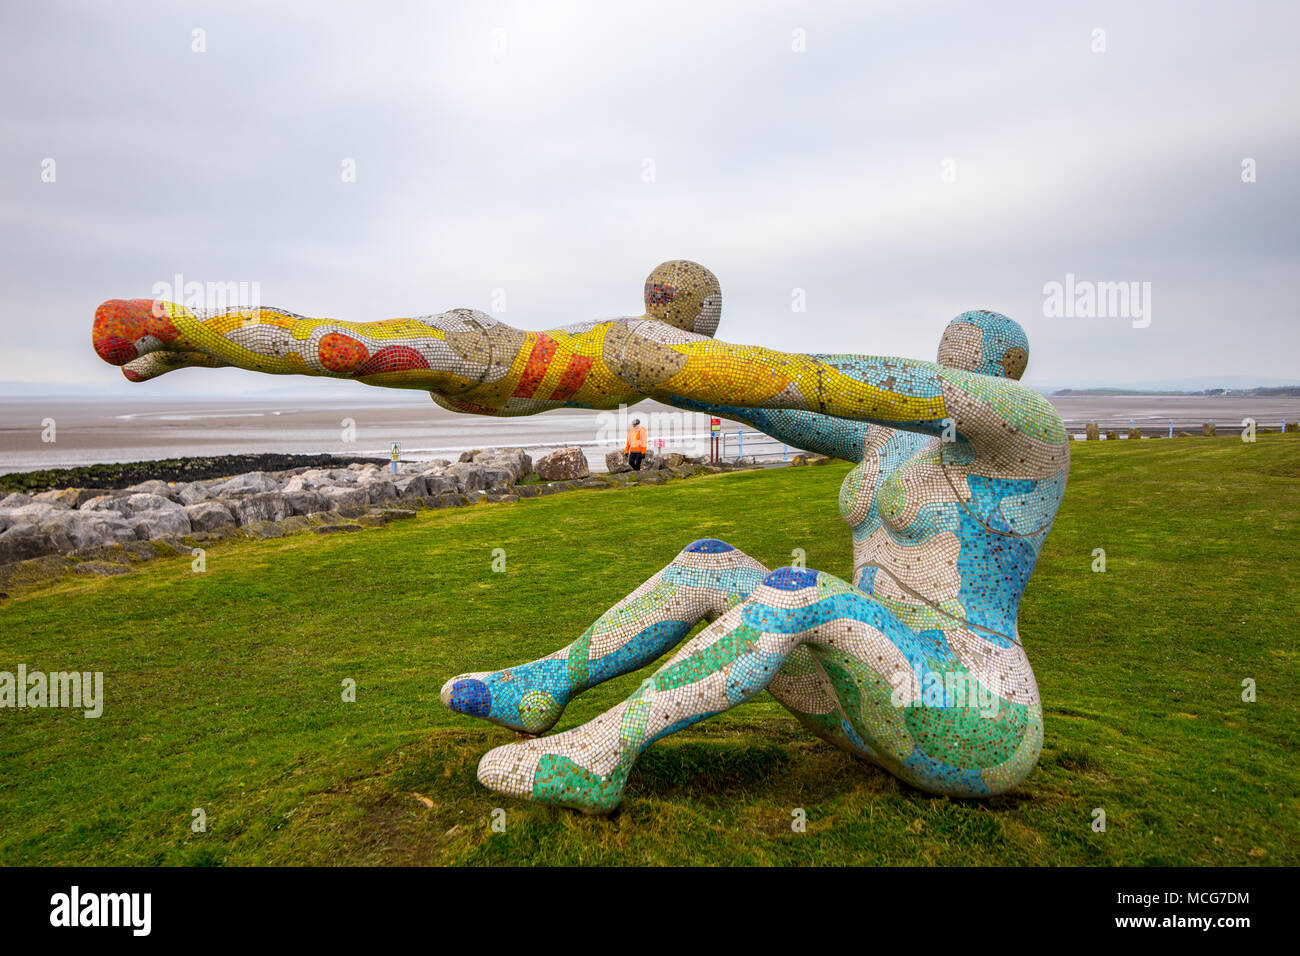 'Love, The Most Beautiful Of Absolute Disasters', popularly known as Venus and Cupid is a sculpture by Shane A. Johnstone.  Image taken on 11 April 20 - Stock Image